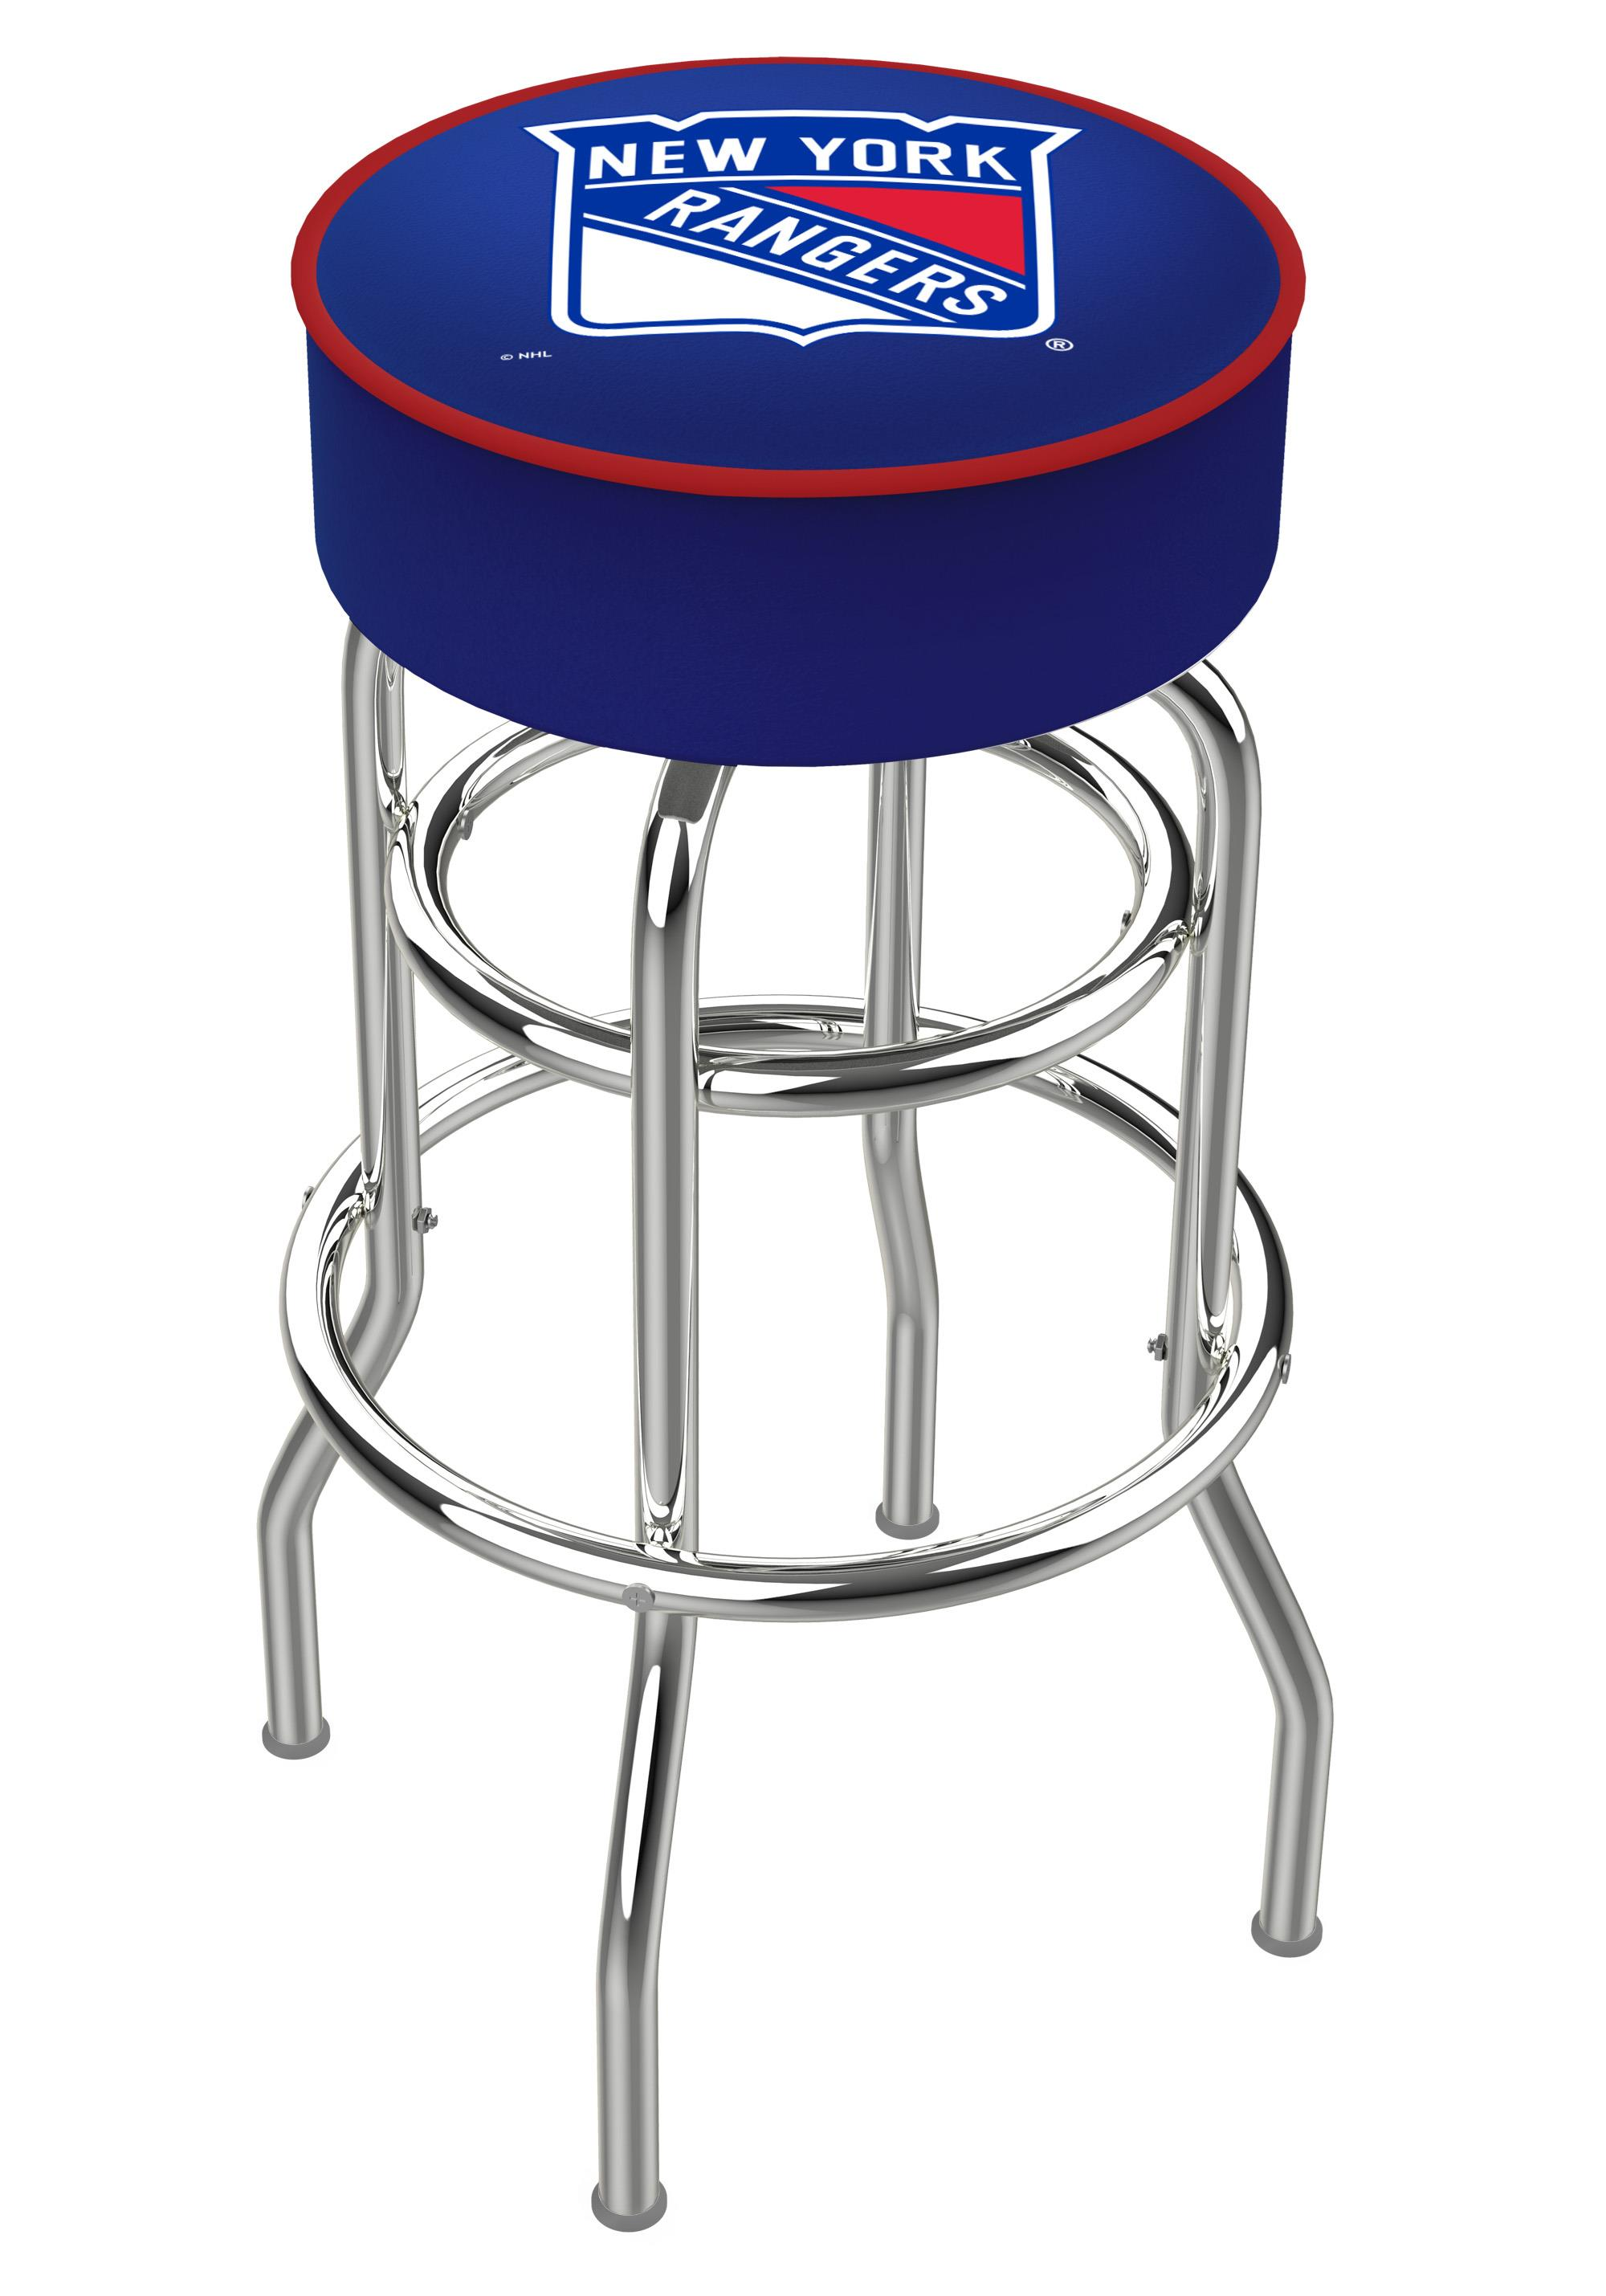 25 Quot L7c1 4 Quot New York Rangers Cushion Seat With Double